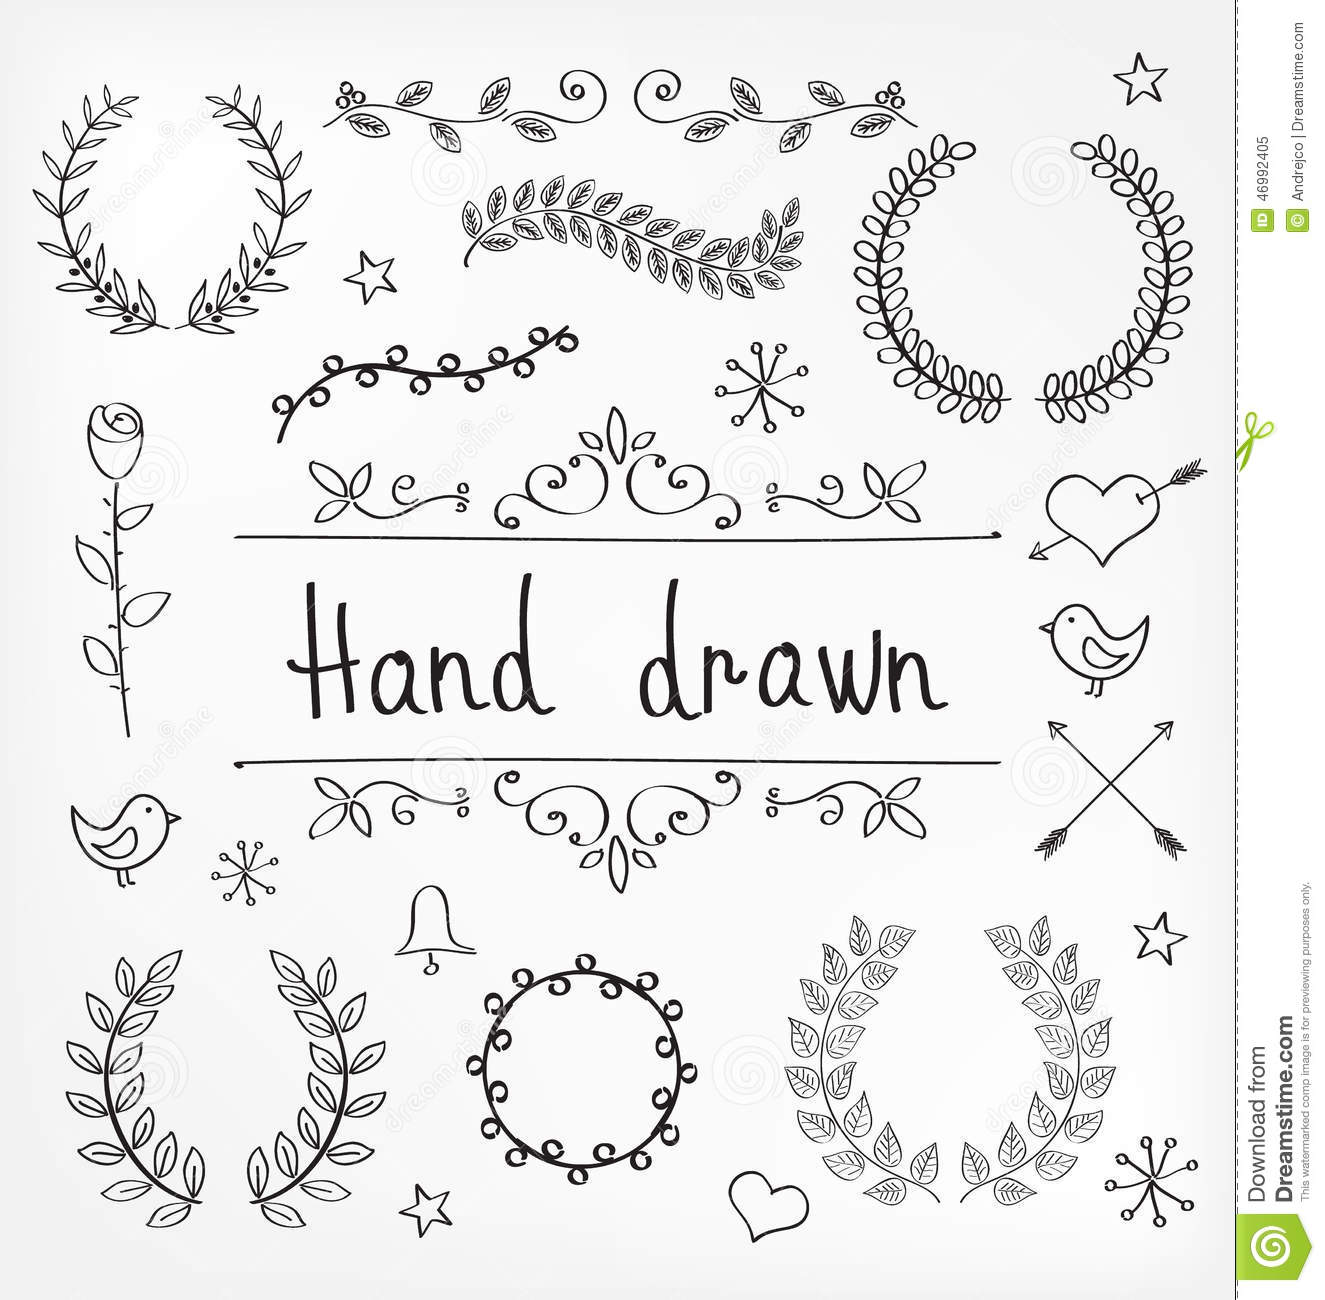 Hand drawn vector laurel wreaths and ornament decorations